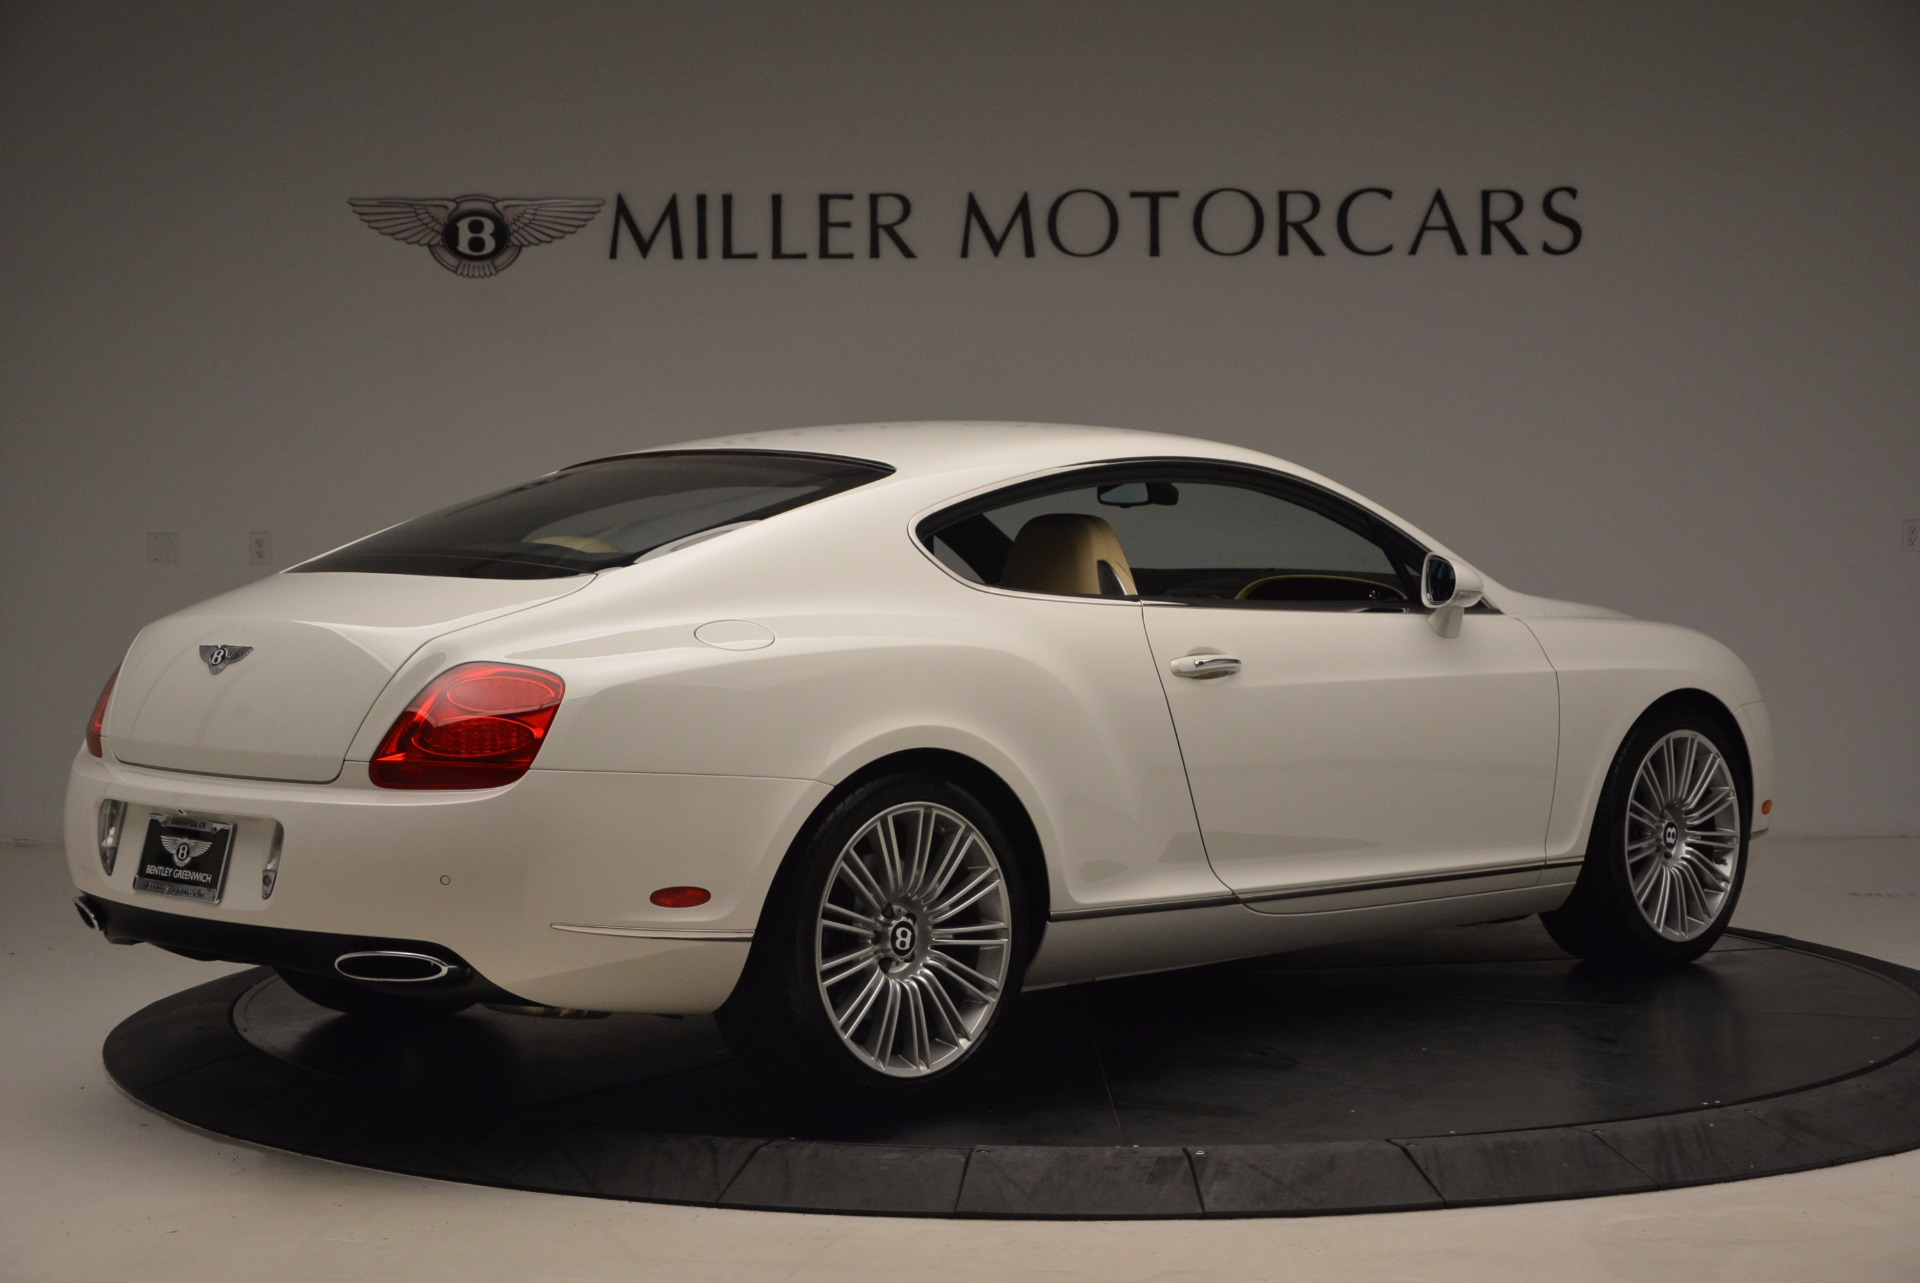 Used 2008 Bentley Continental GT Speed For Sale In Westport, CT 1552_p9